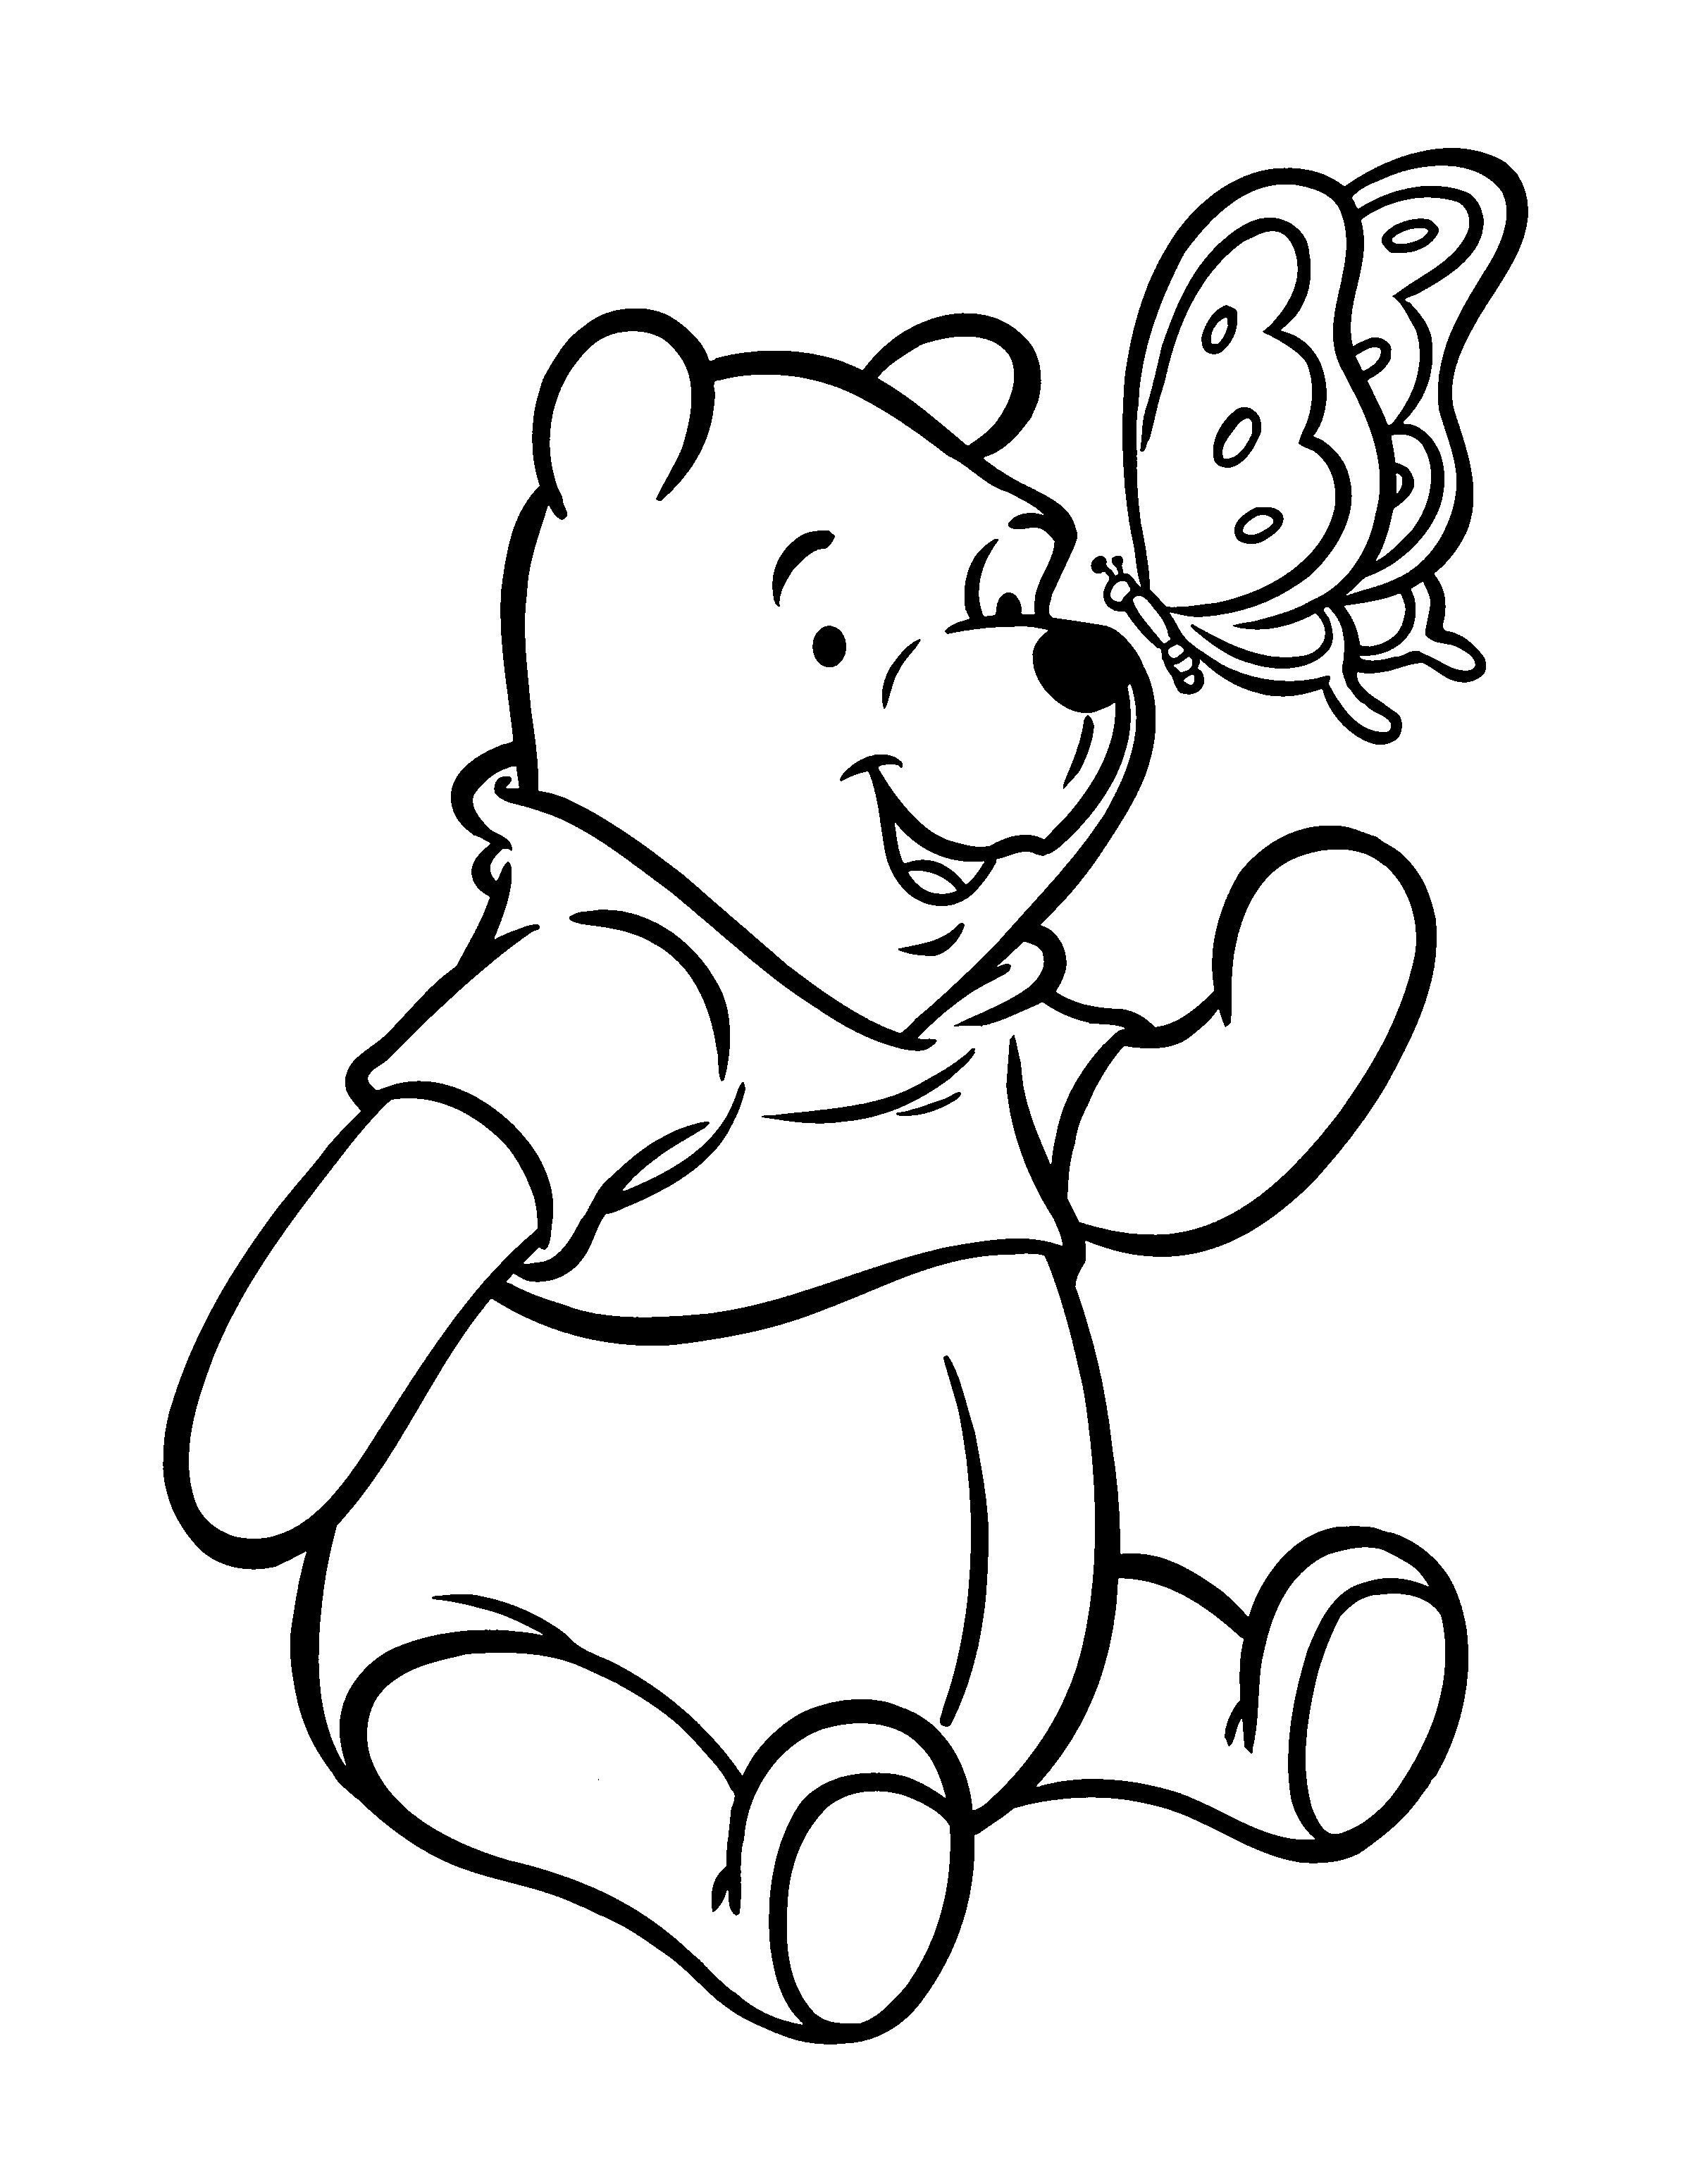 Winnie The Pooh Coloring Pages Bear Coloring Pages Cartoon Coloring Pages Kids Printable Coloring Pages